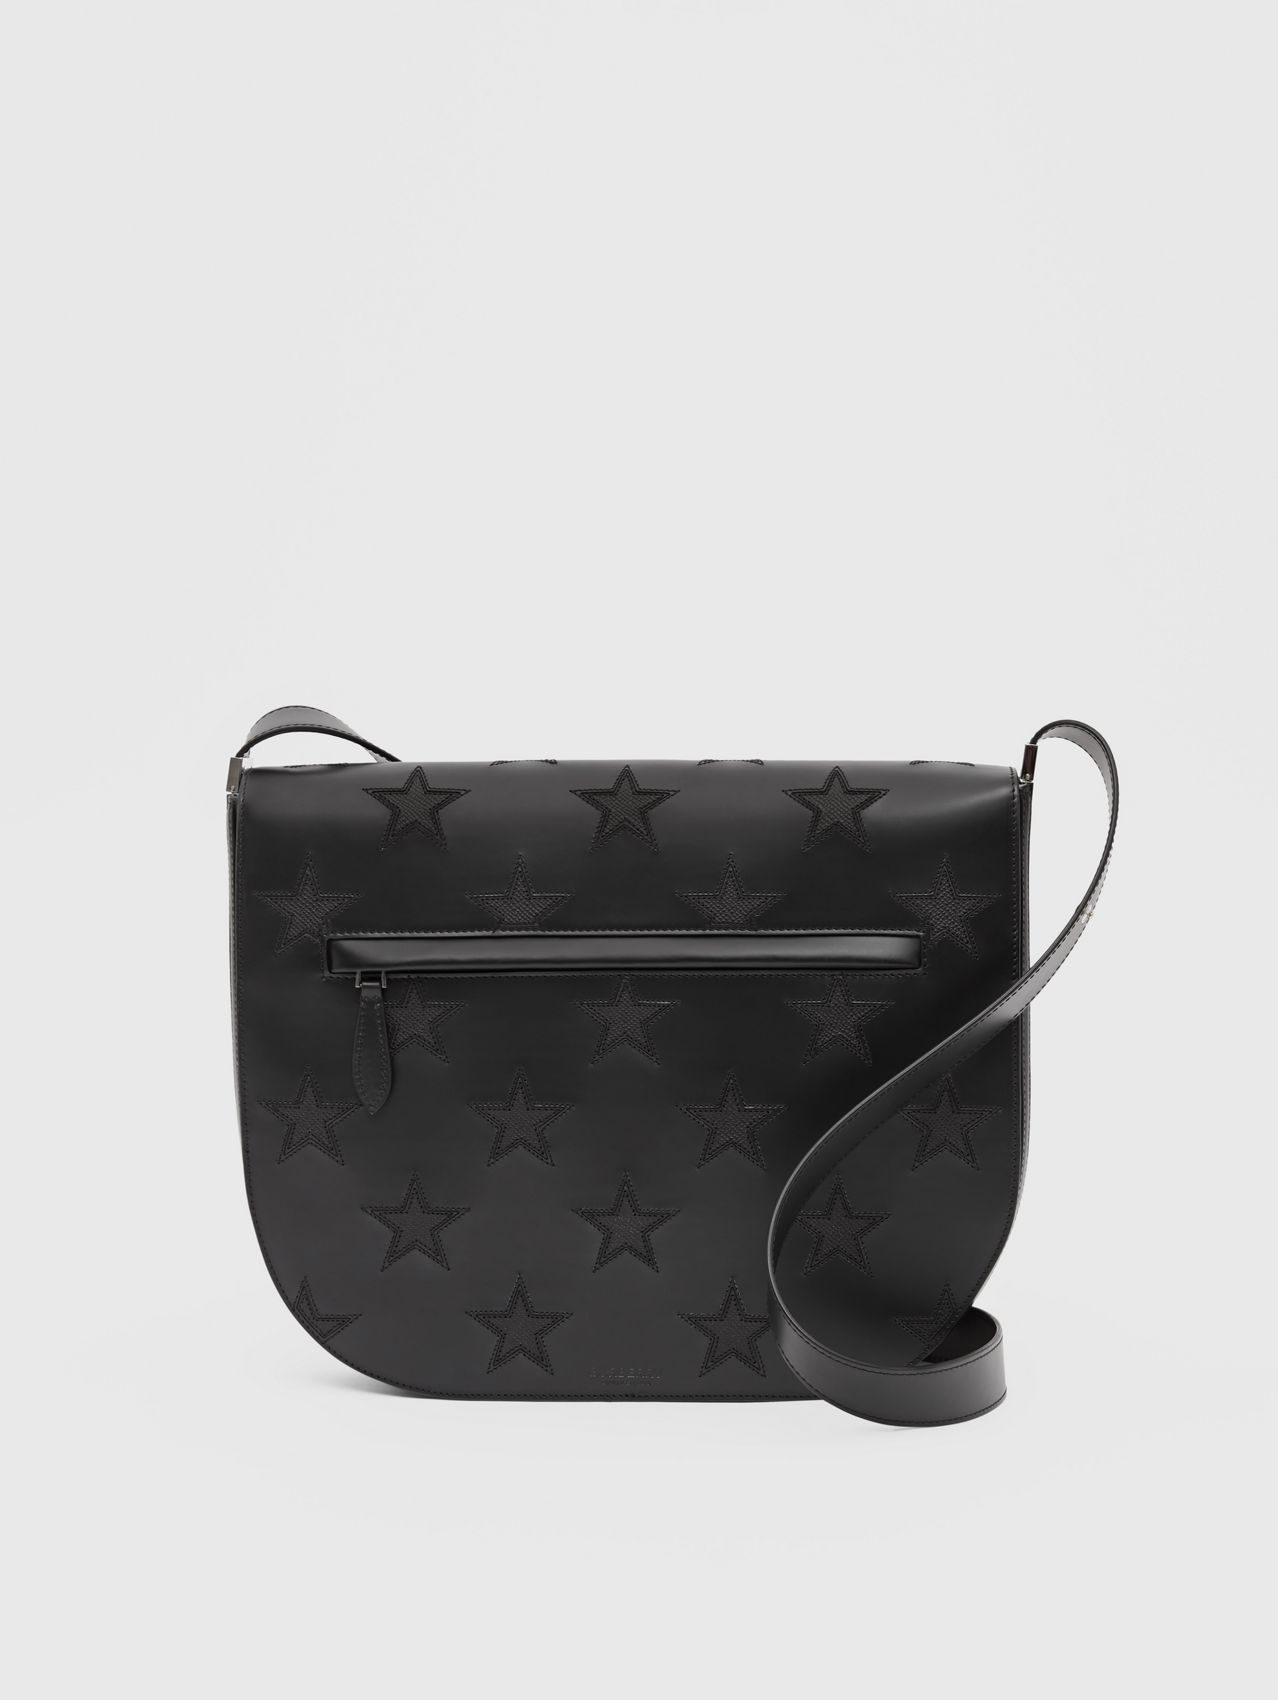 Star Motif Leather Olympia Crossbody Bag in Black